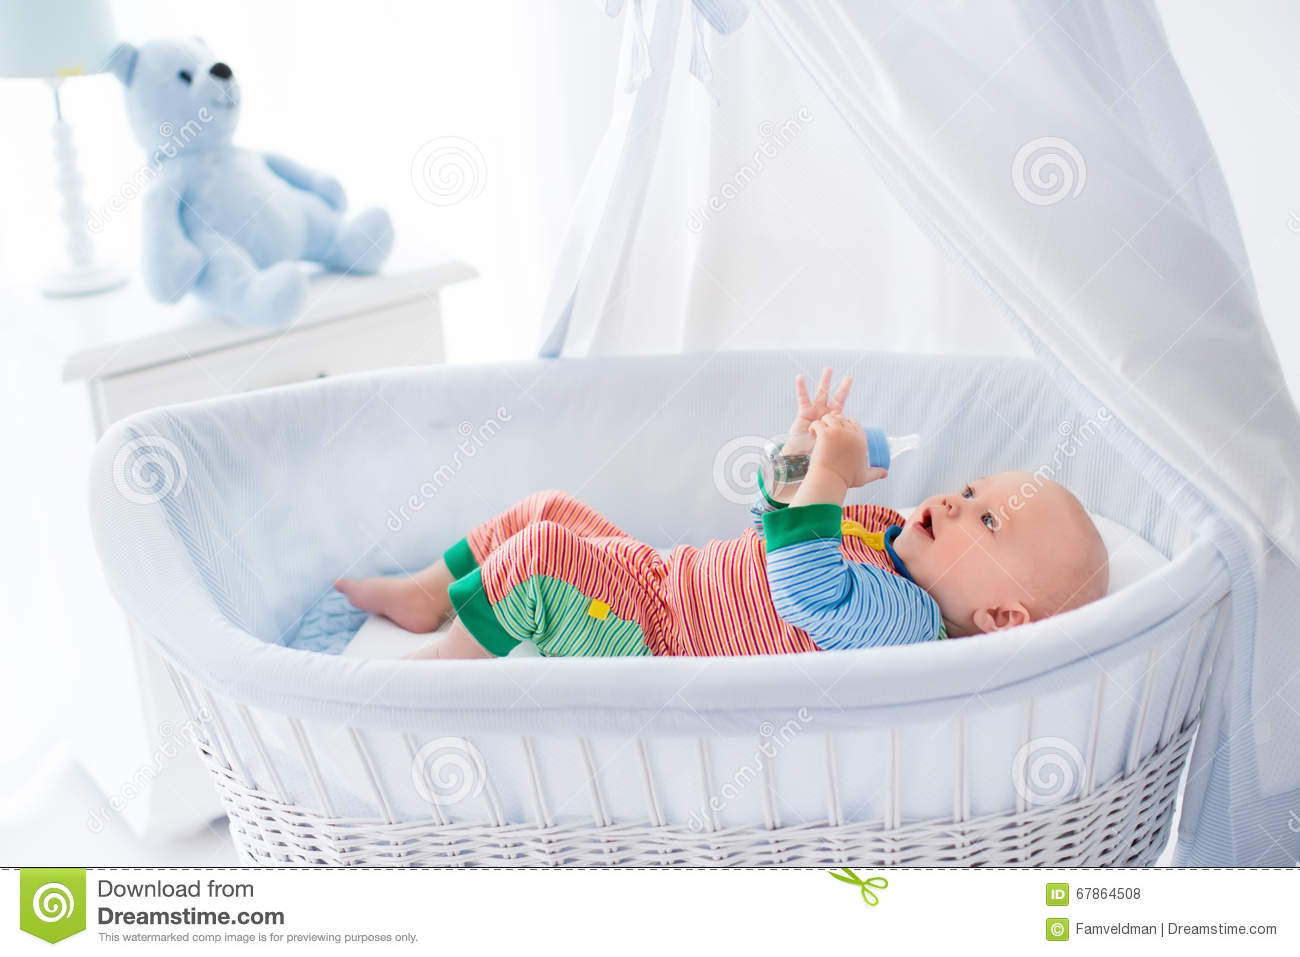 little-baby-bottle-white-bed-funny-color